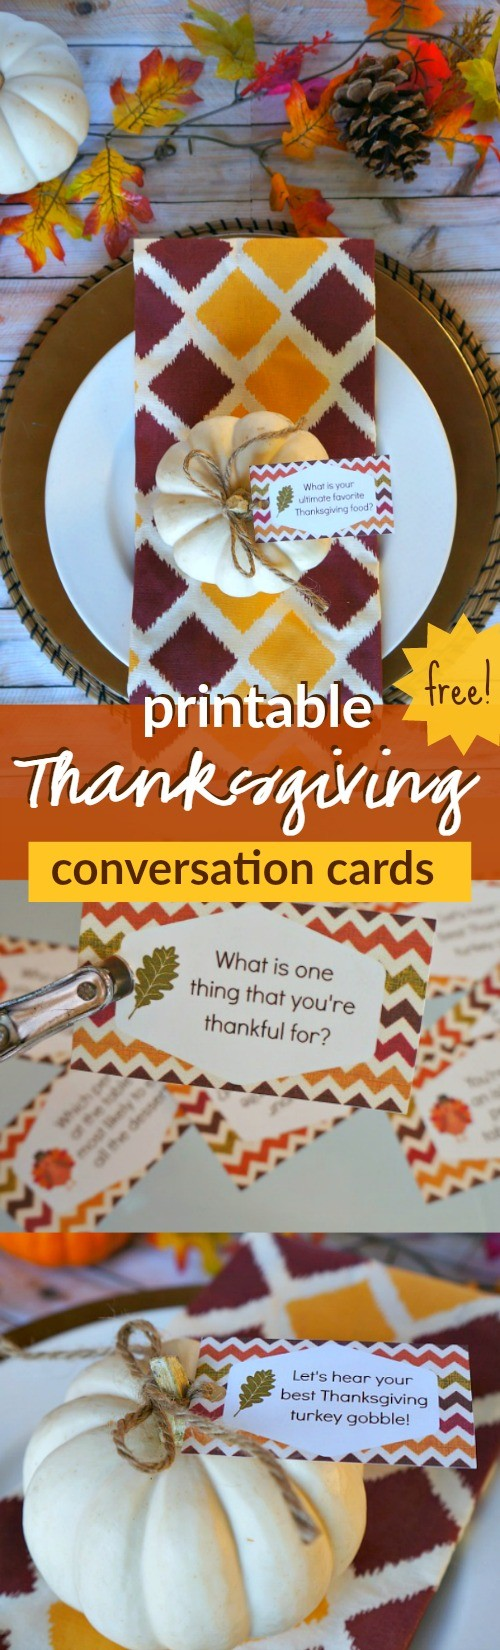 Free printable Thanksgiving conversation starter cards :: How fun are these Thanksgiving conversation starter cards? Print them out for free and put them on the table this turkey day for a fun family conversation!